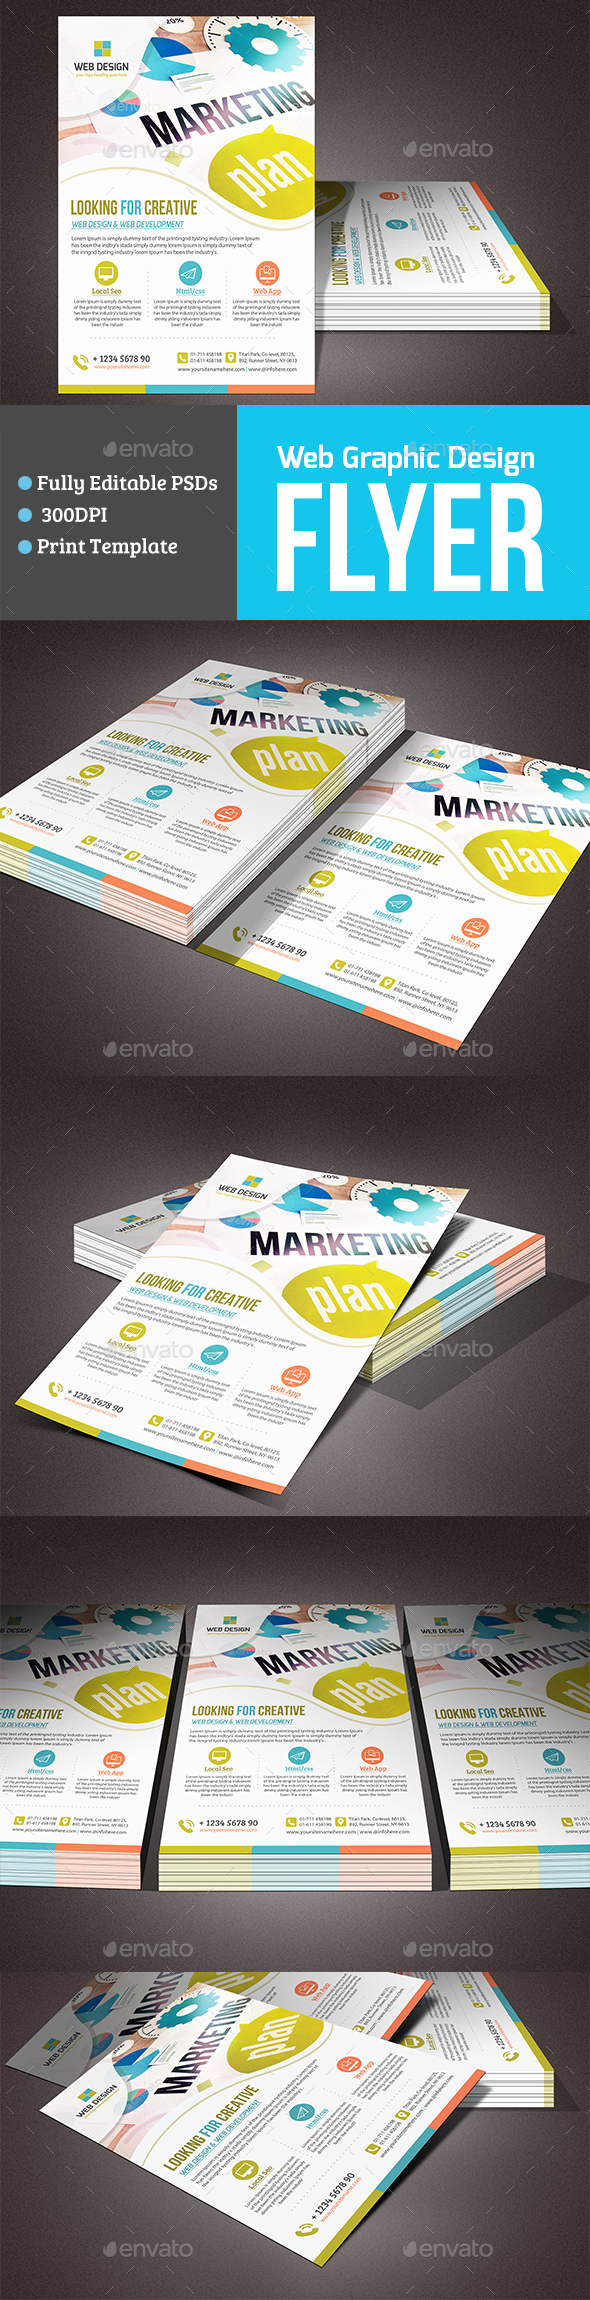 Web Graphic Design Flyer - Corporate Flyers